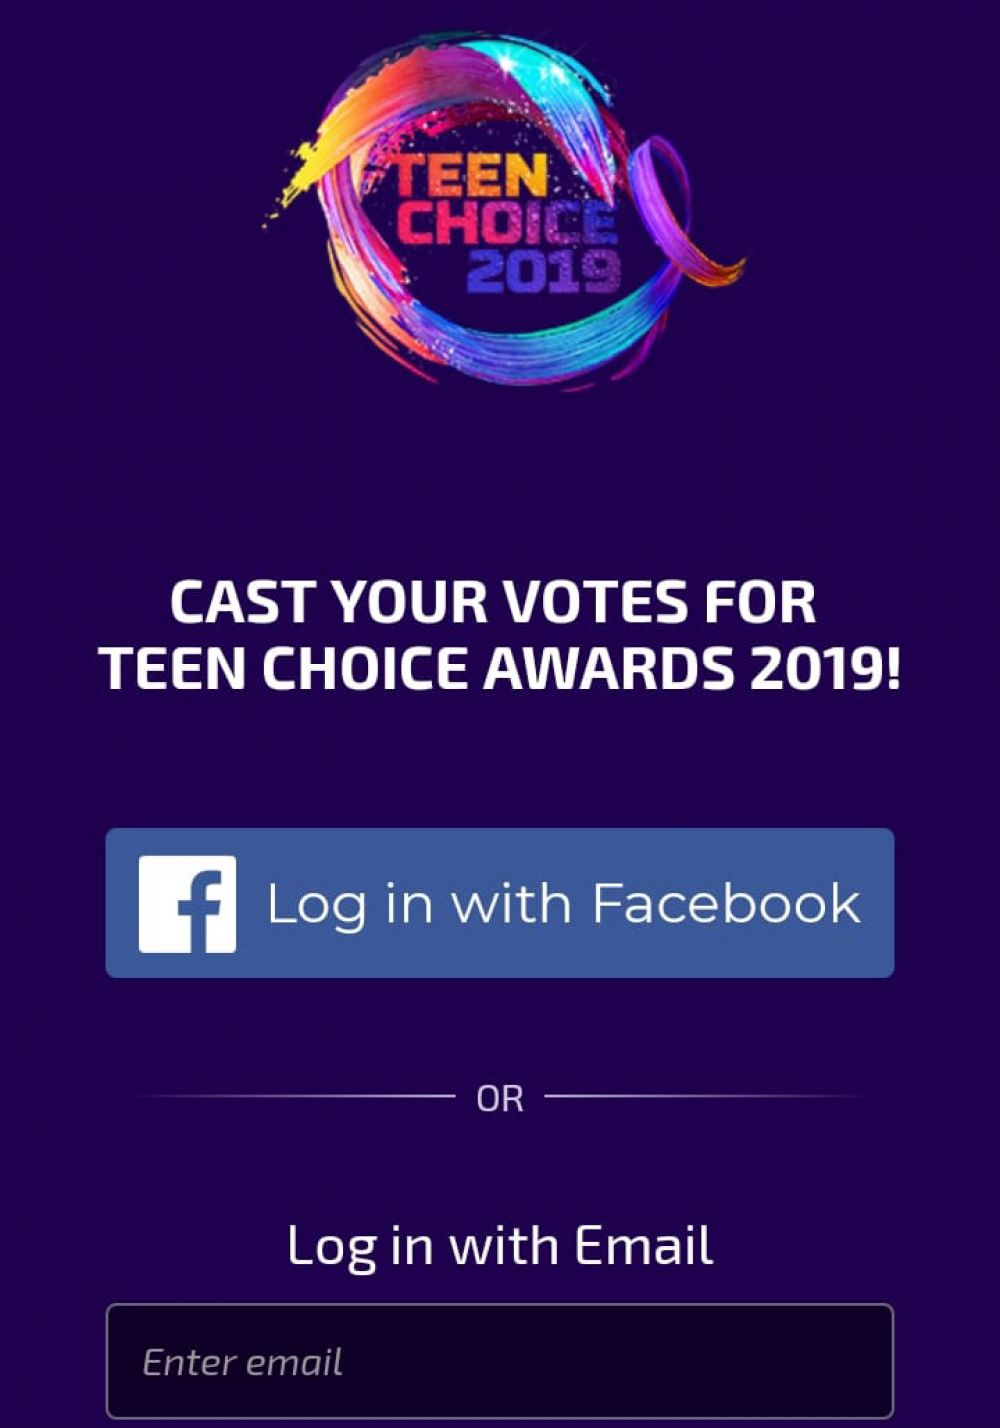 Teen Choice Awards- Cómo votar. (Captura de pantalla)